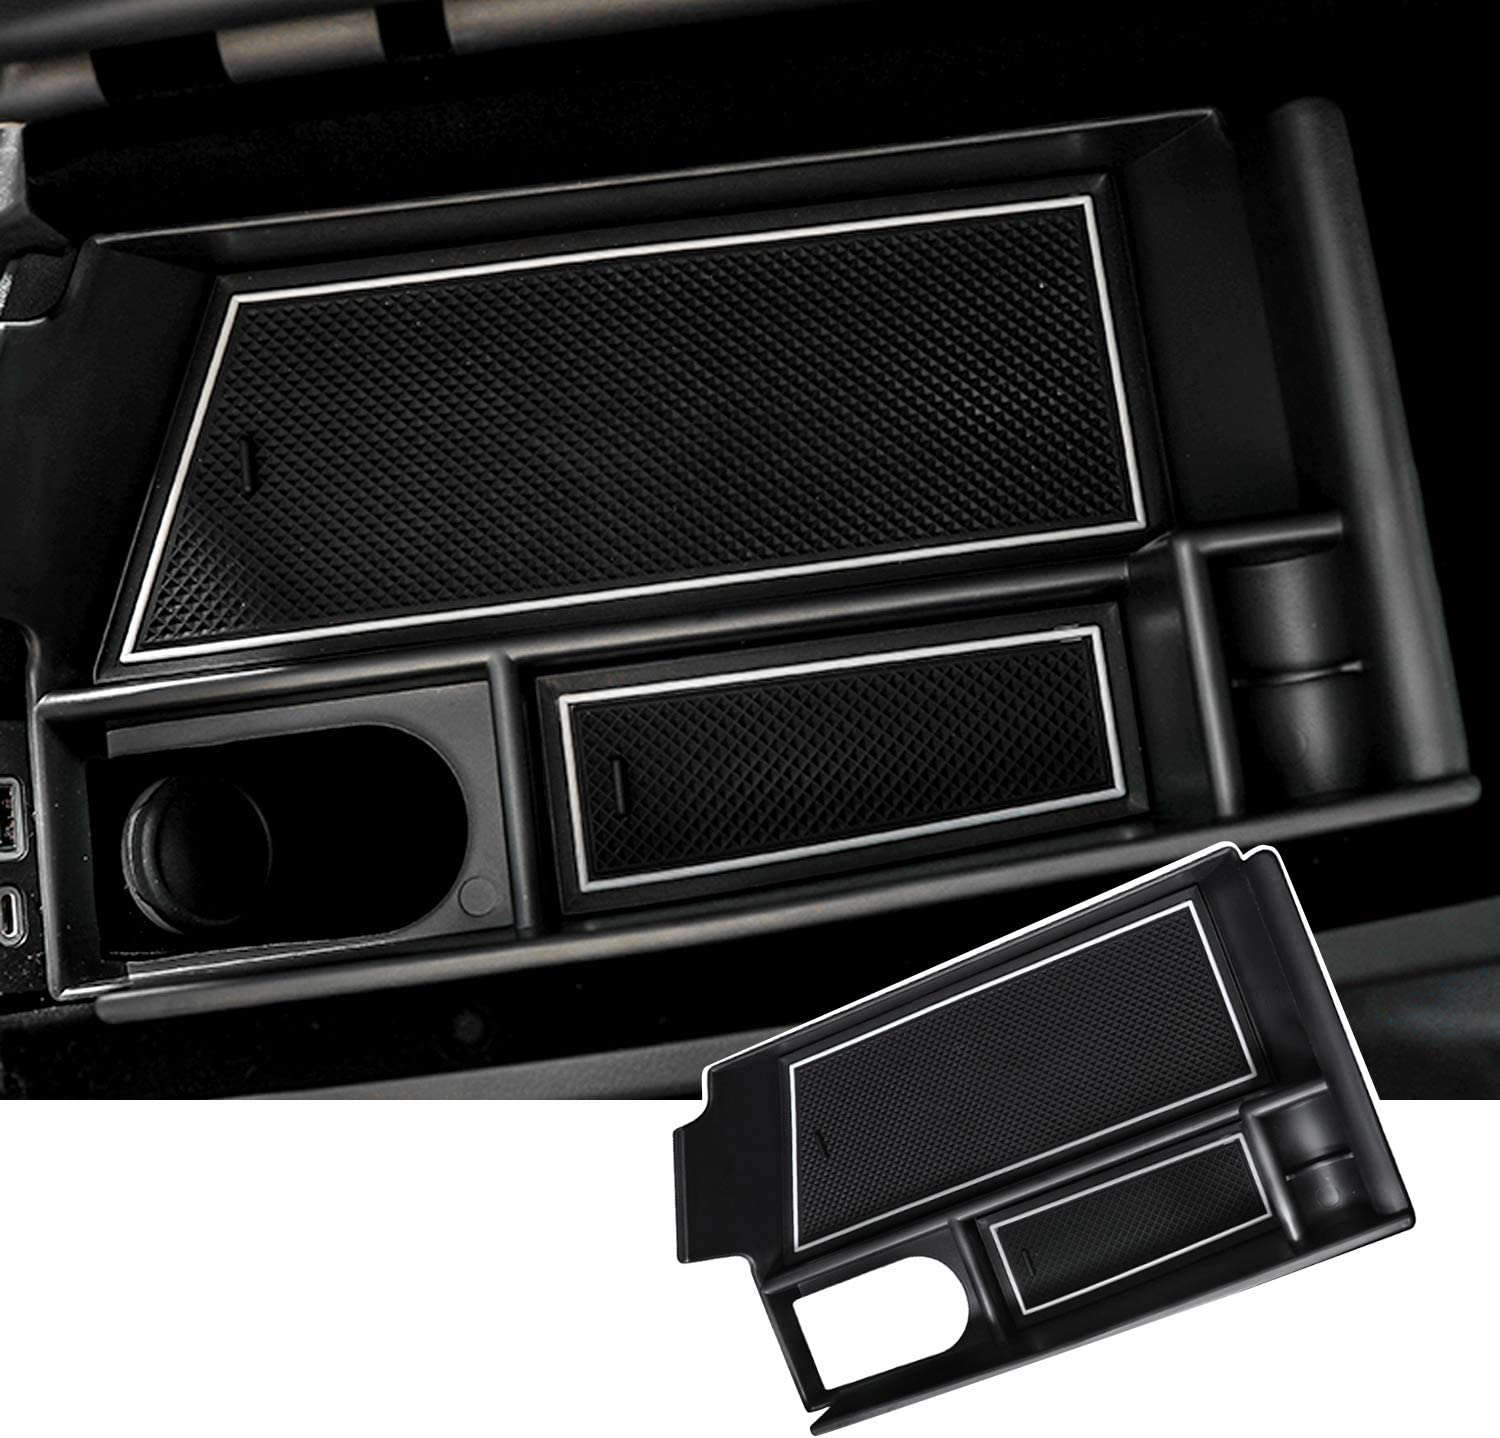 SKTU Center Console Organizer Customized for Cadillac CT5 Insert ABS Black Materials Tray Armrest Box Glove Secondary Storage Box with Coin and Glass Holder